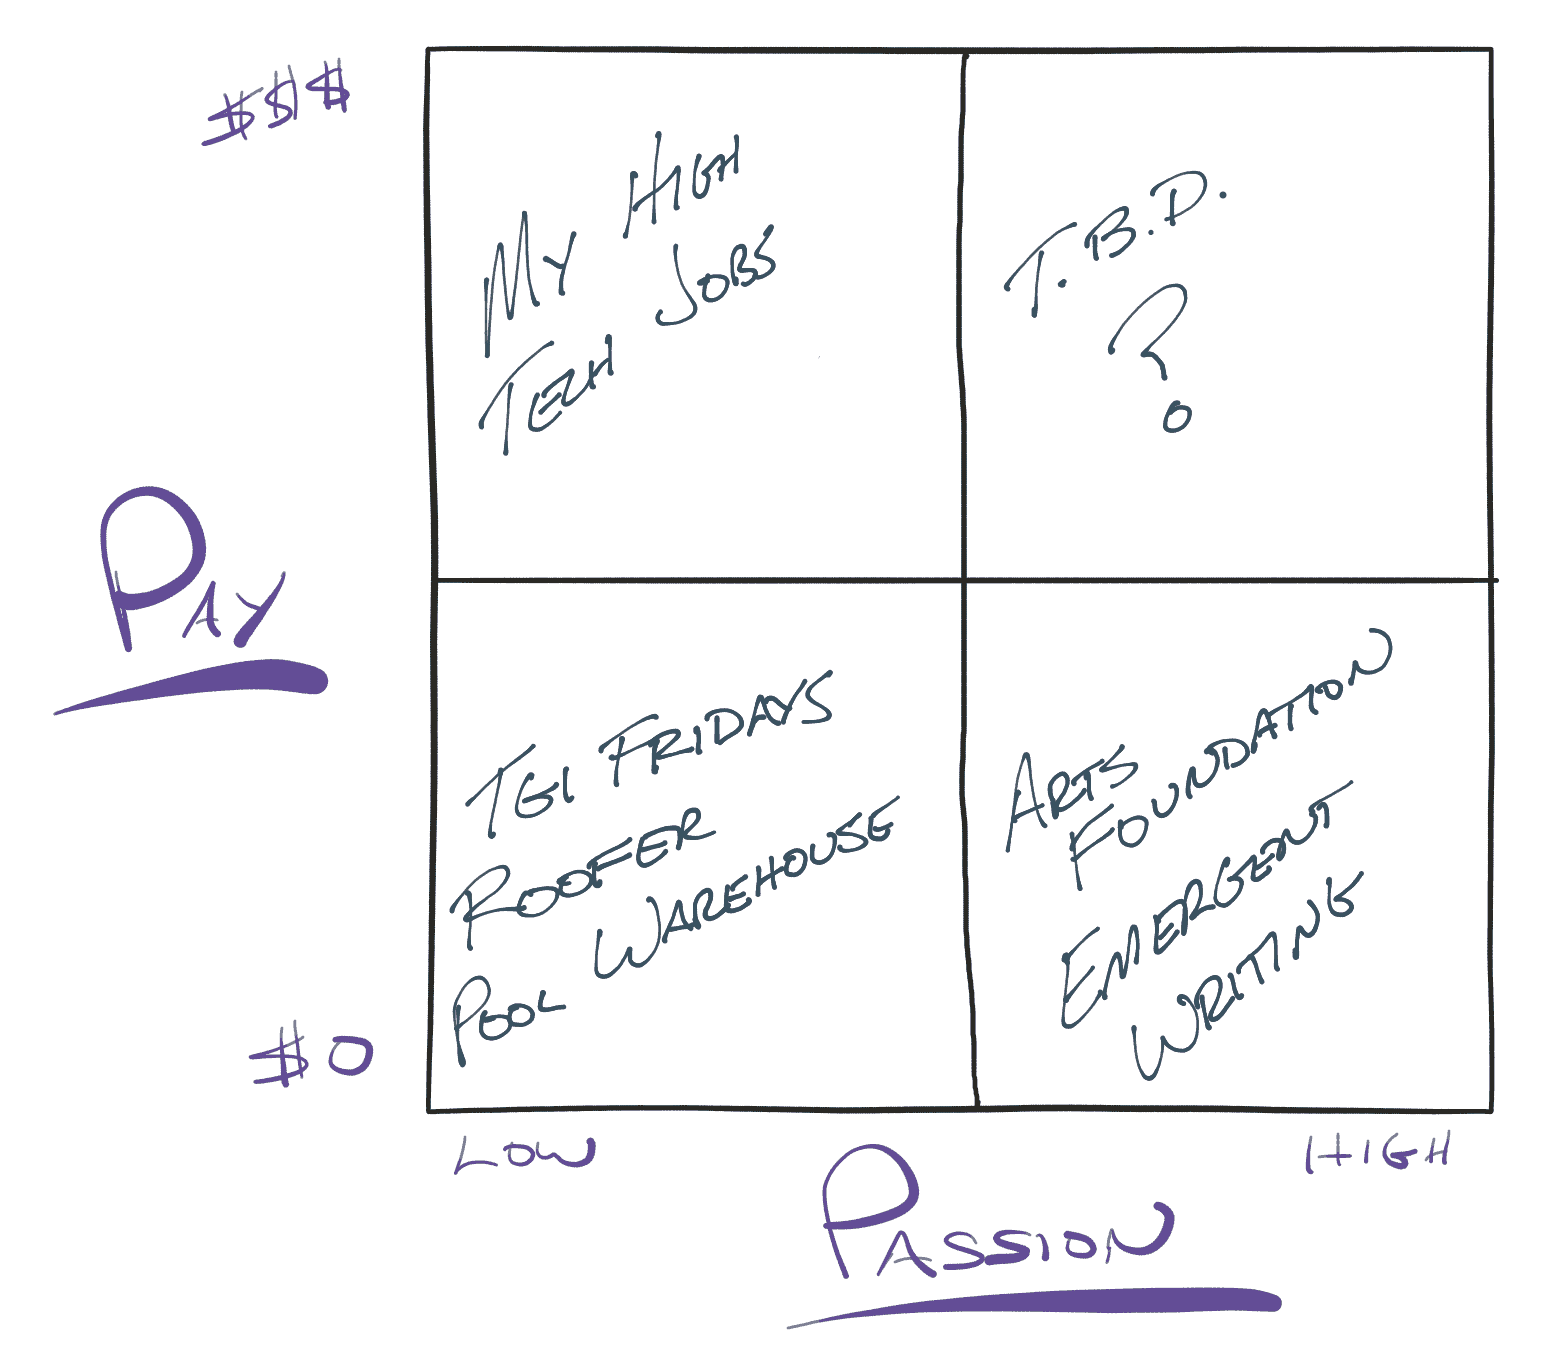 Pay vs Passion Matrix for Me